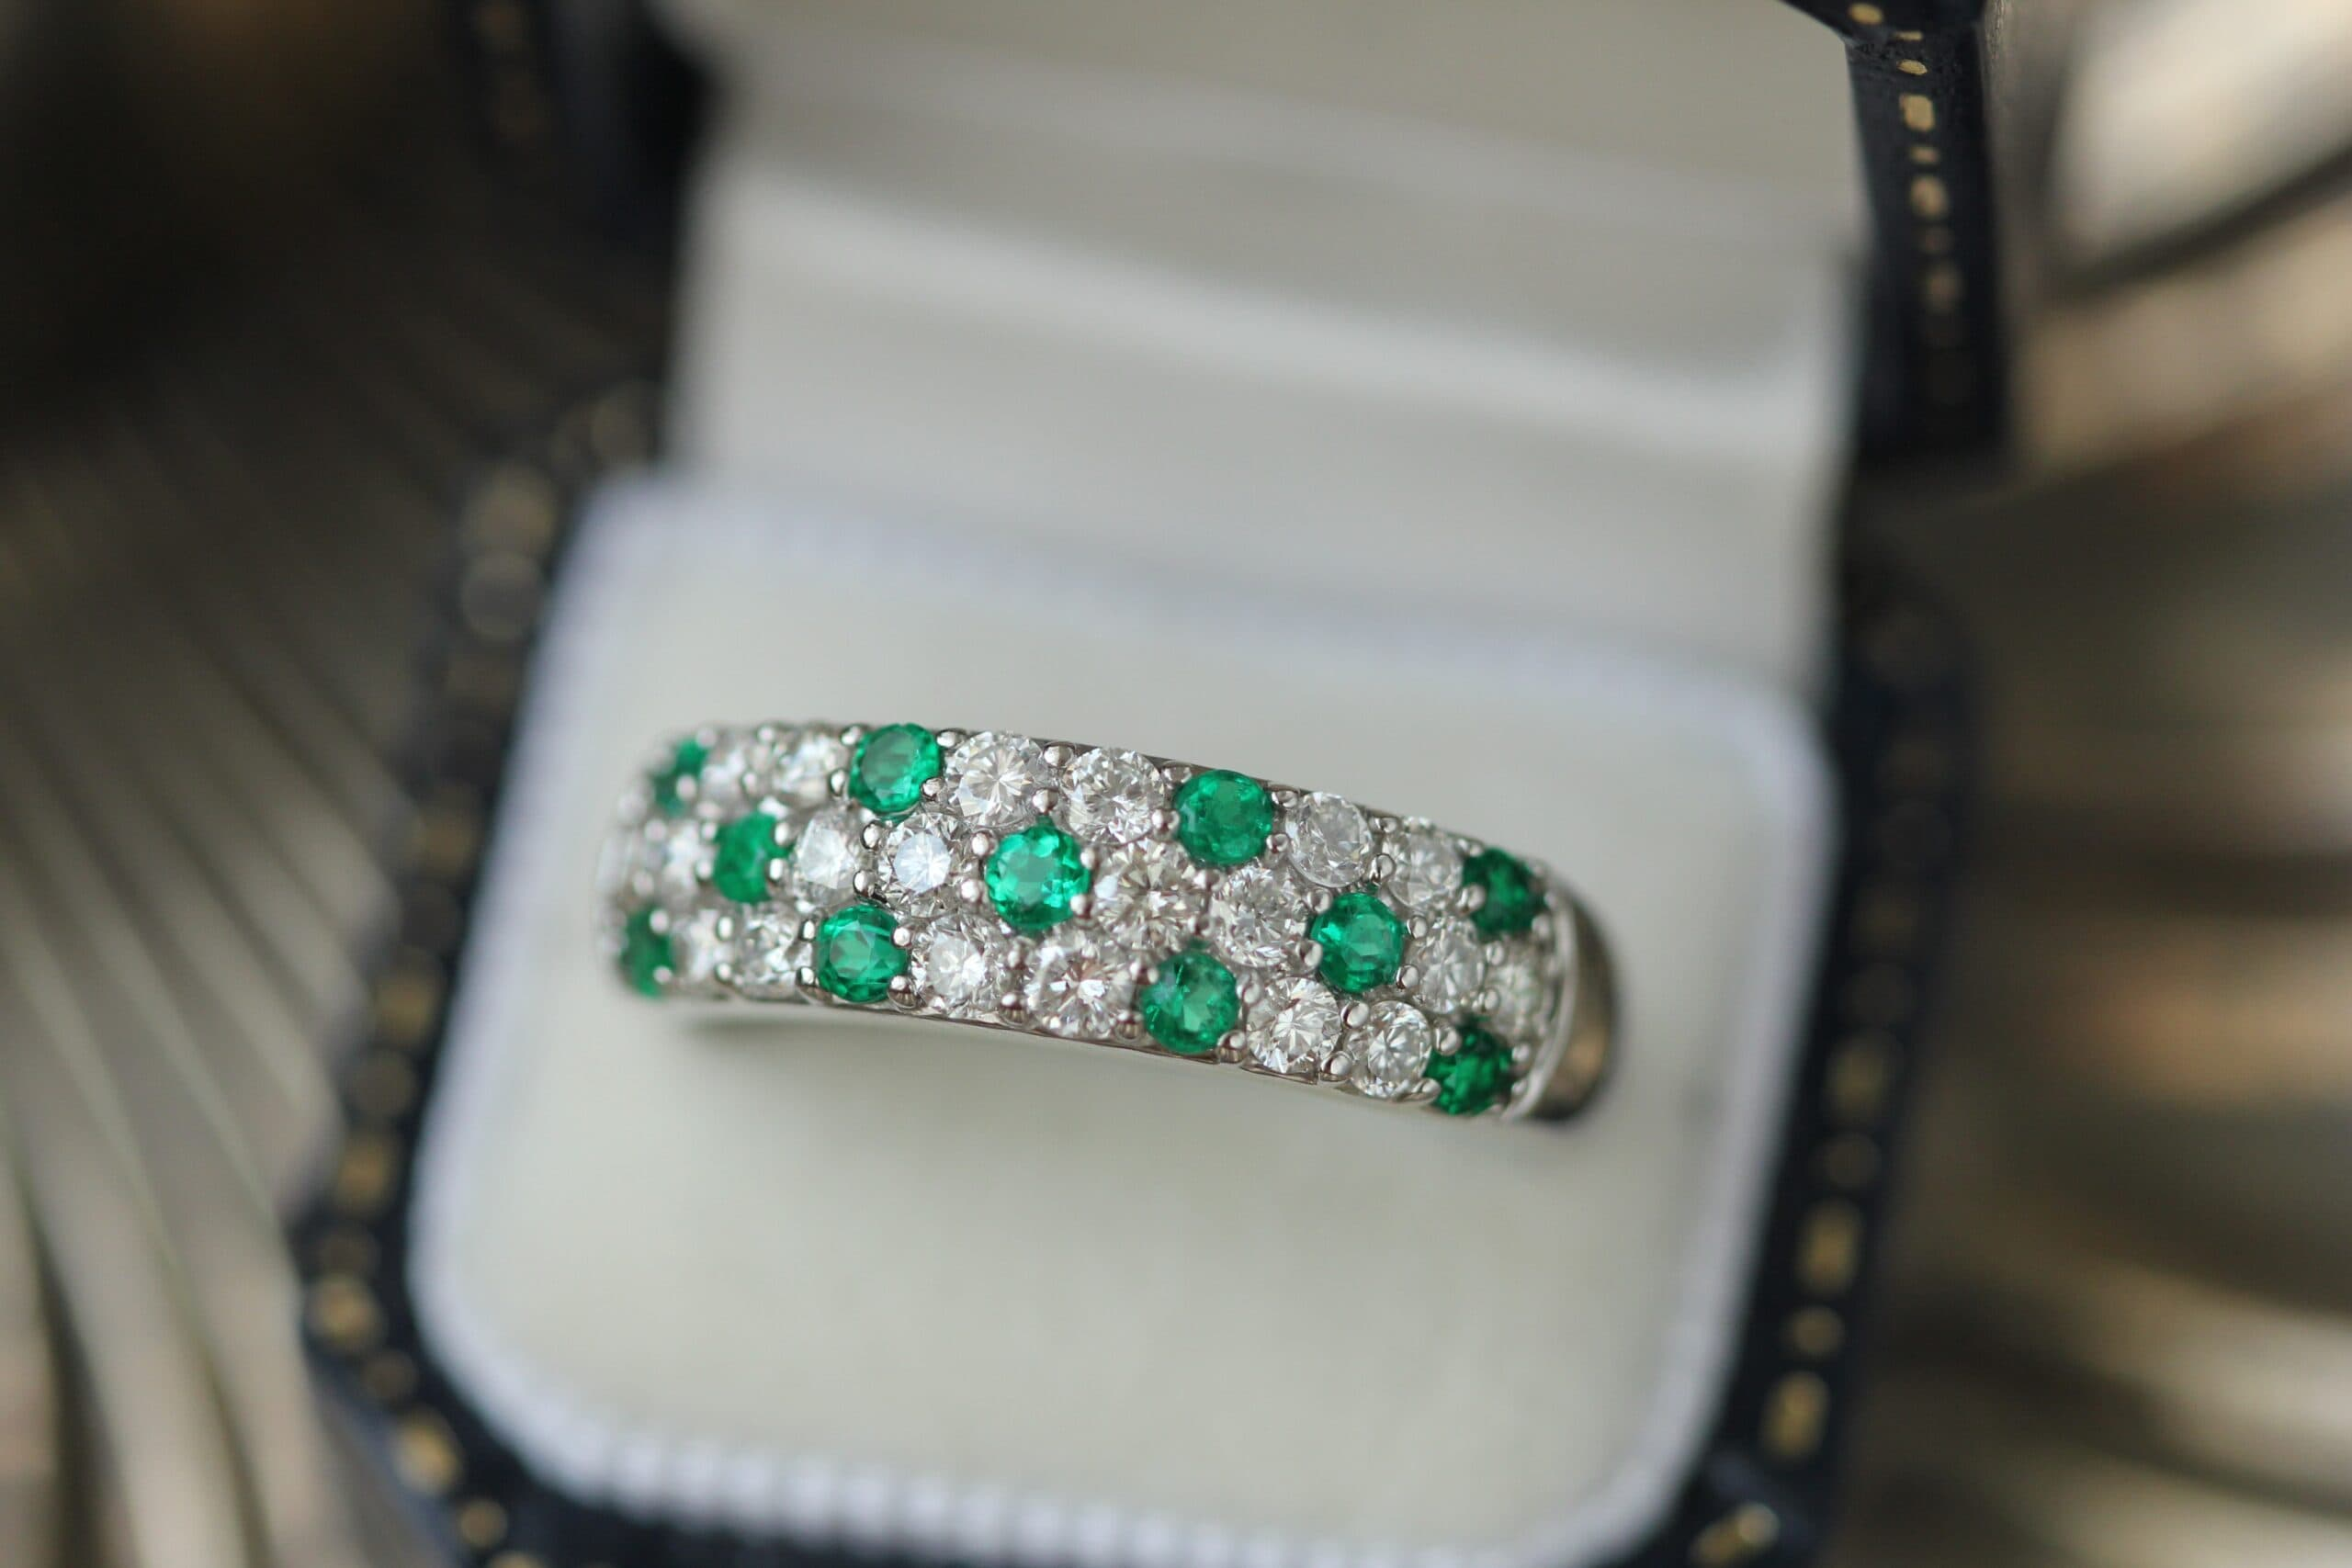 Is South Africa the best country to buy diamonds?